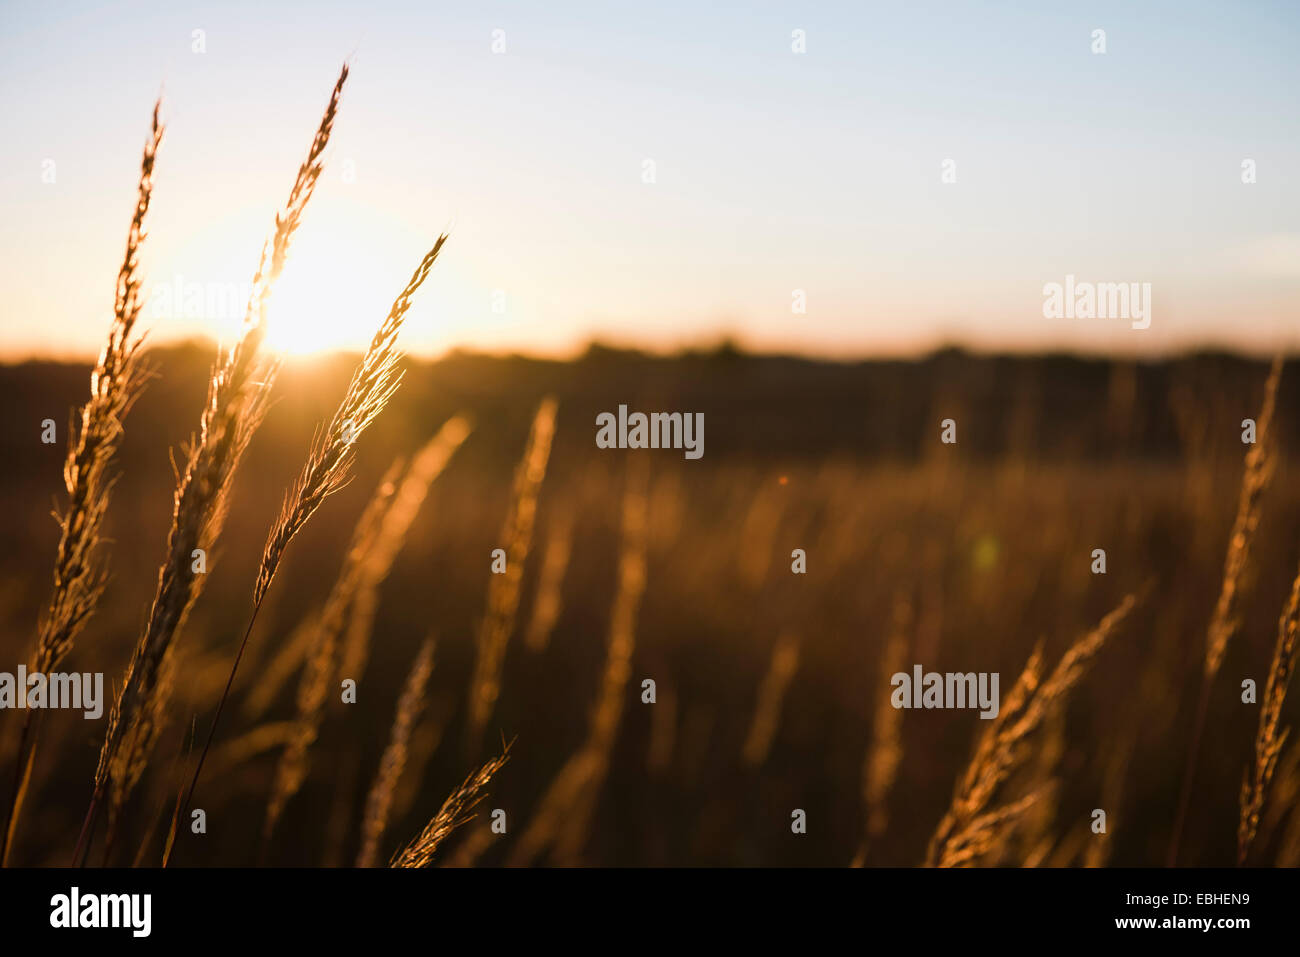 United States Weather Wheat Field Stock Photos & United States ...